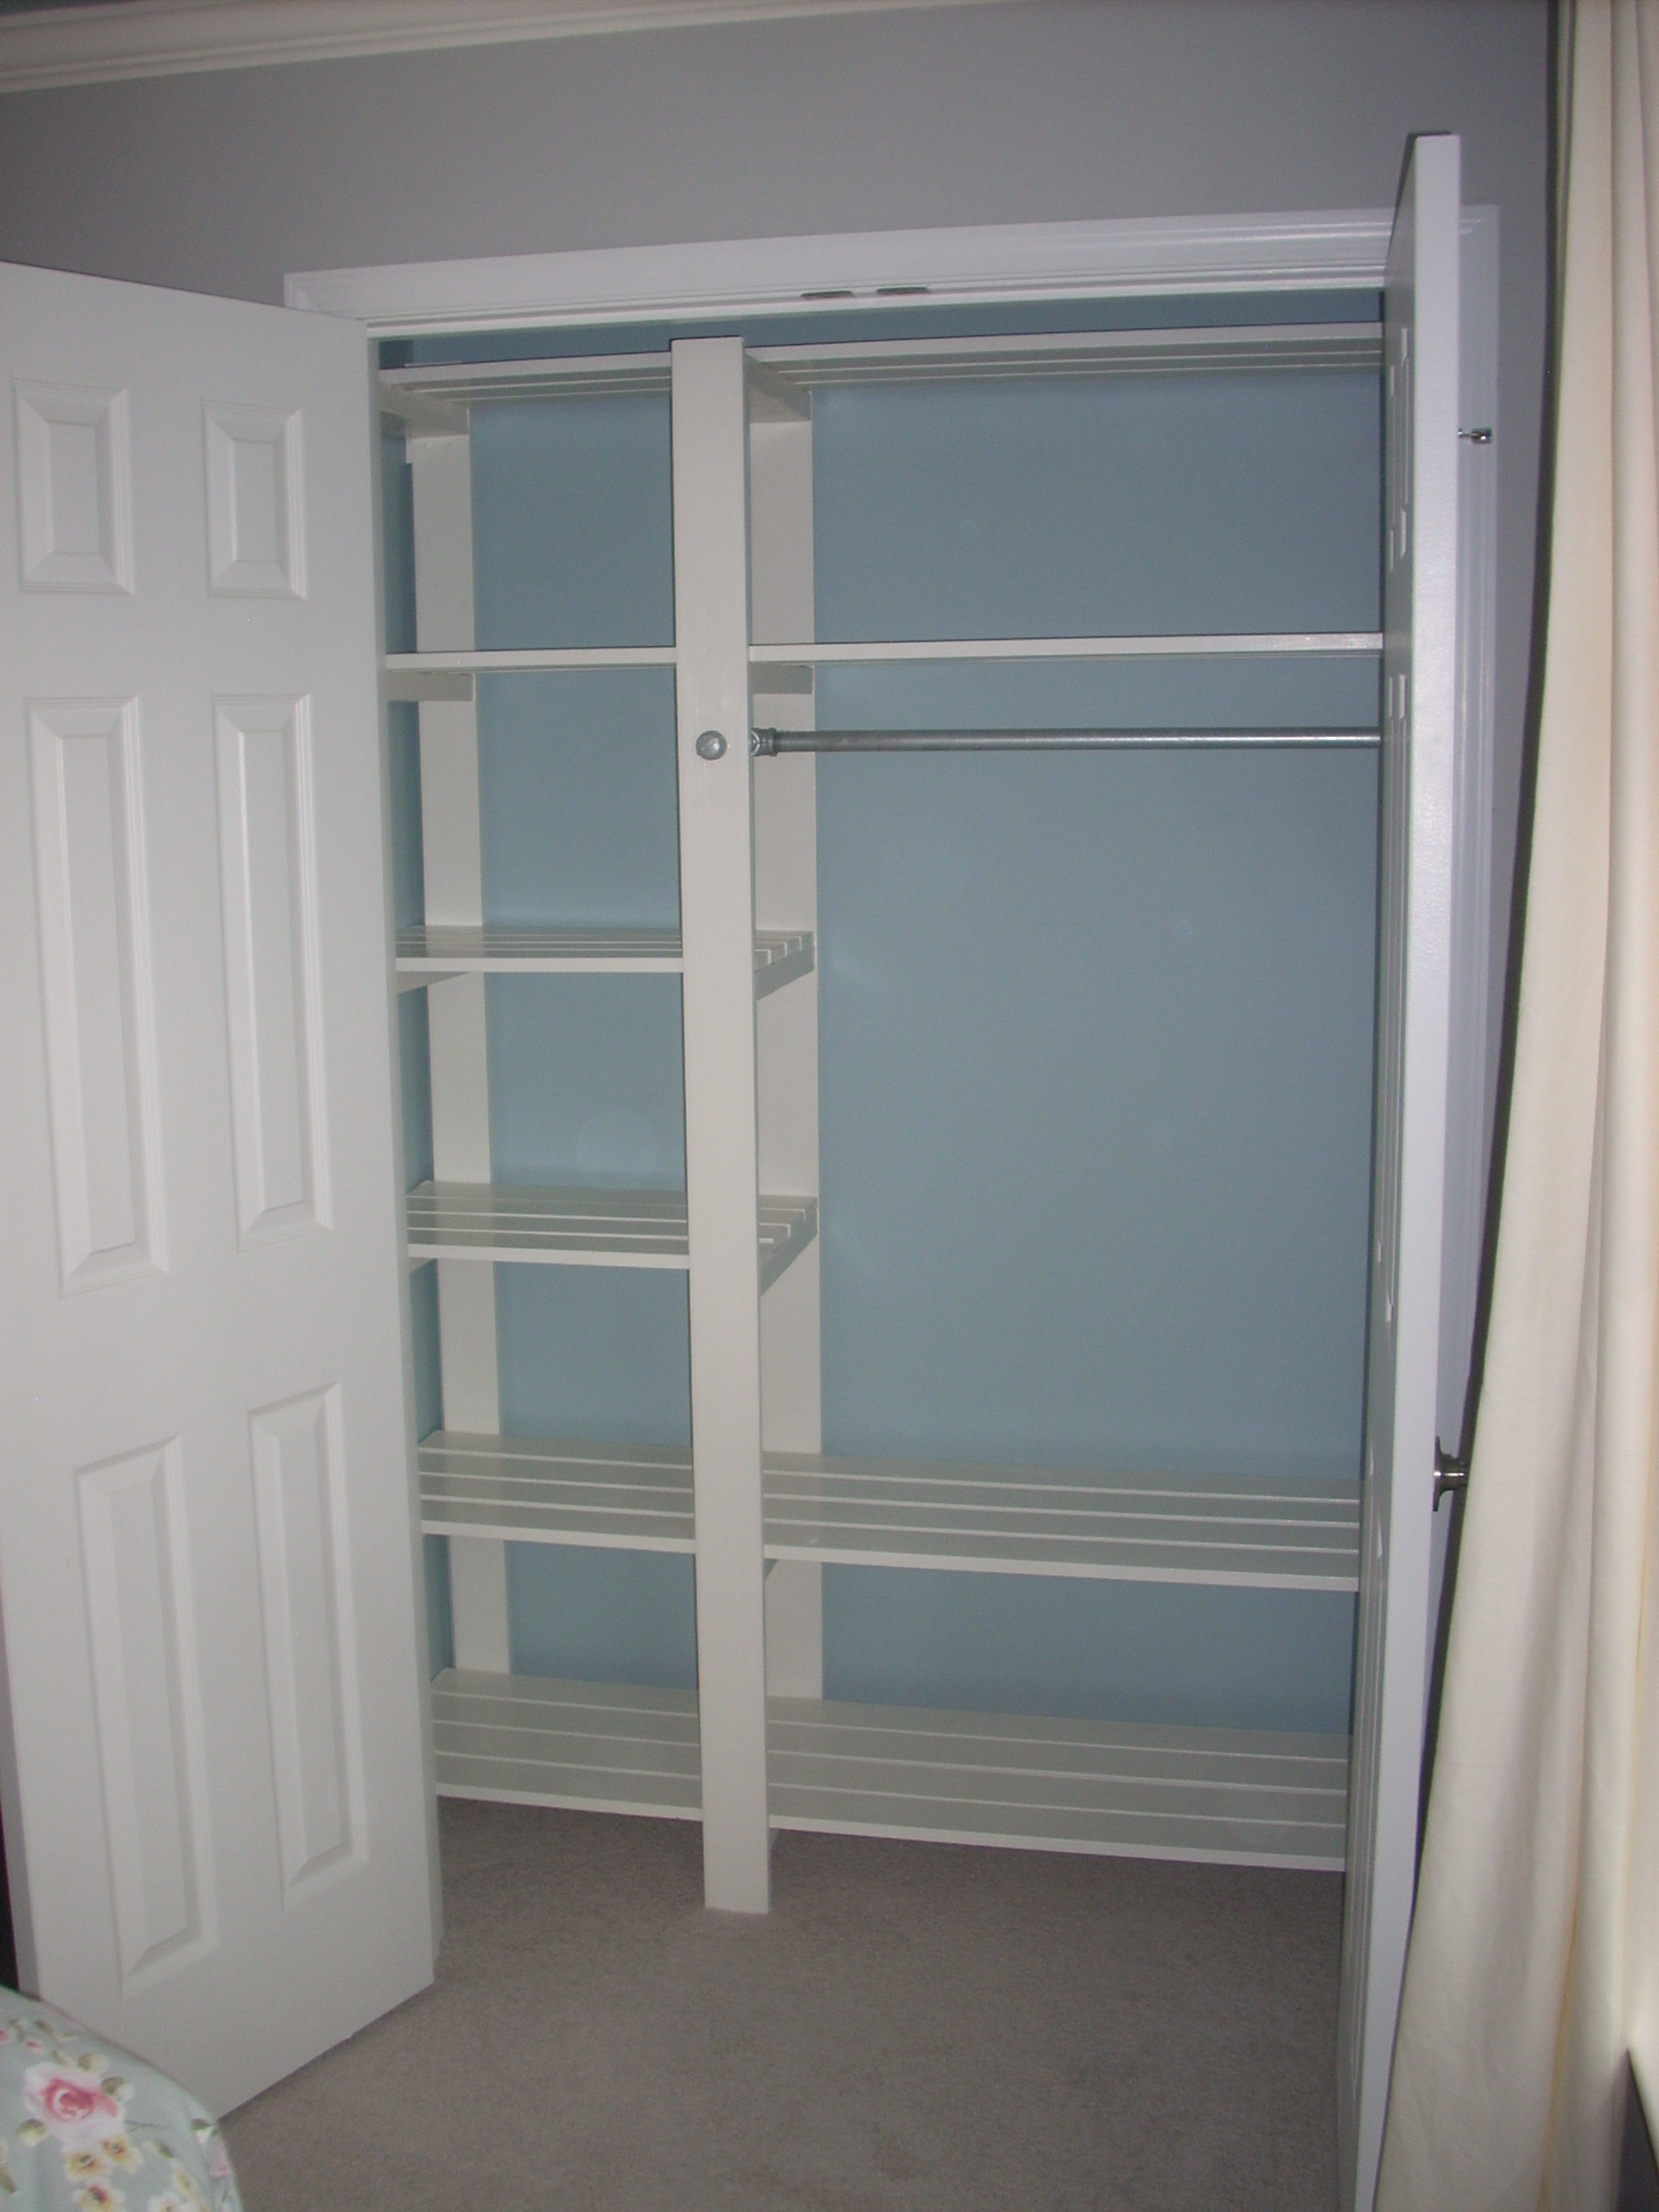 Ana white guest bedroom closet diy projects - Closet for small room ...